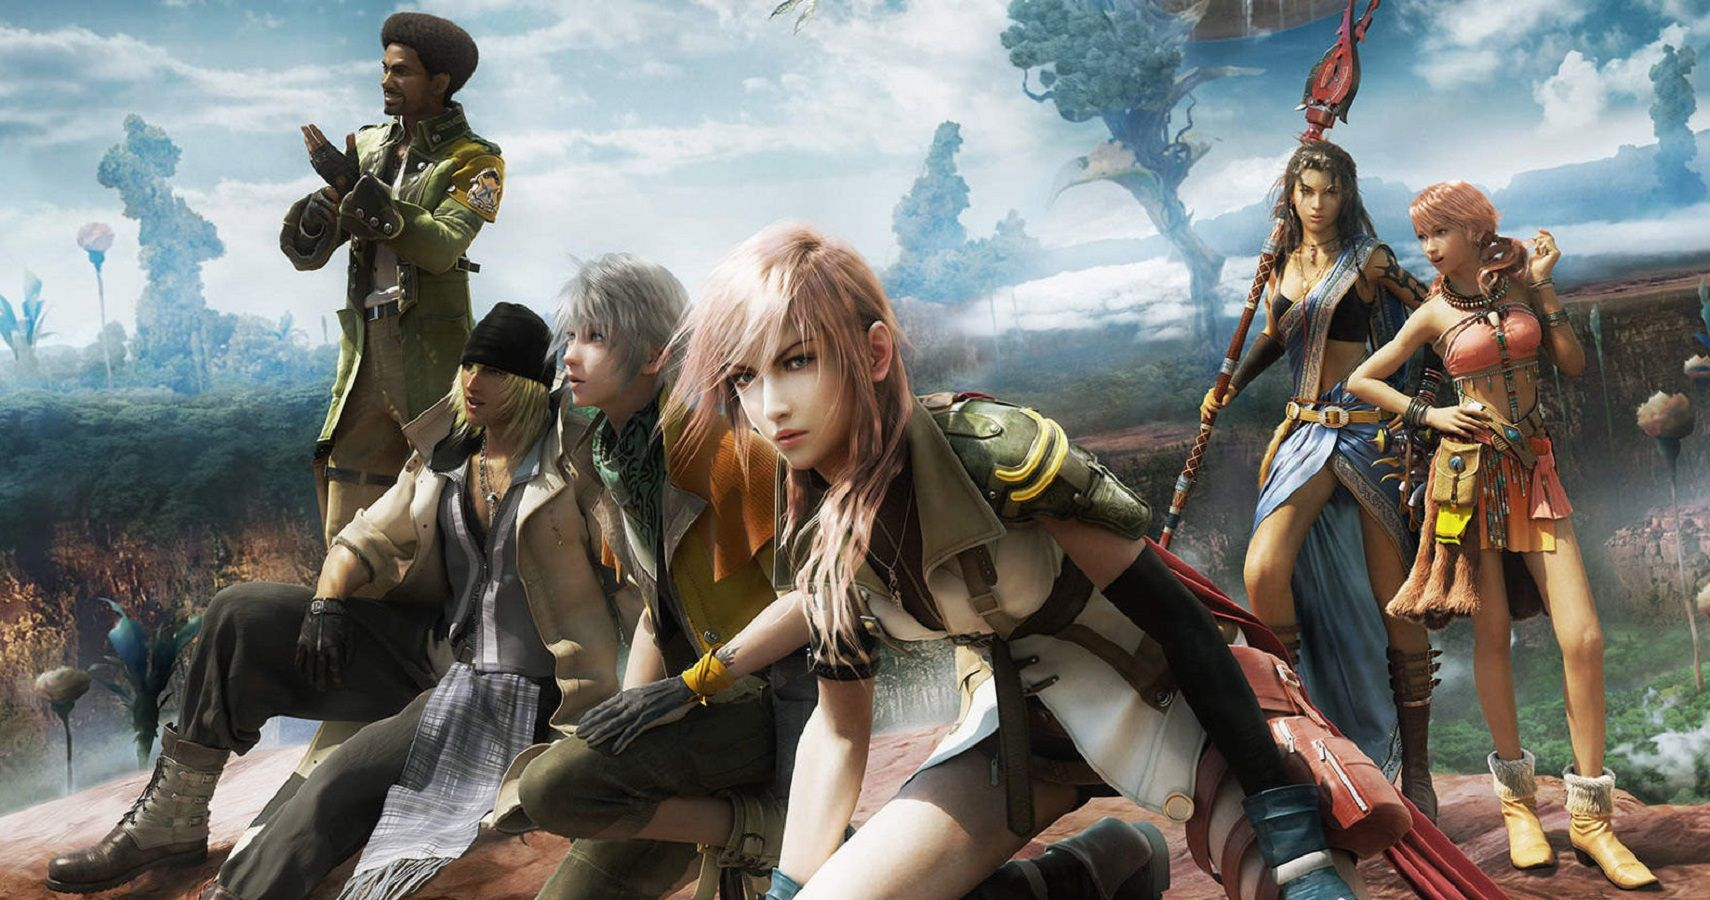 Every Main Final Fantasy Game Ranked On How Long They Take To Beat